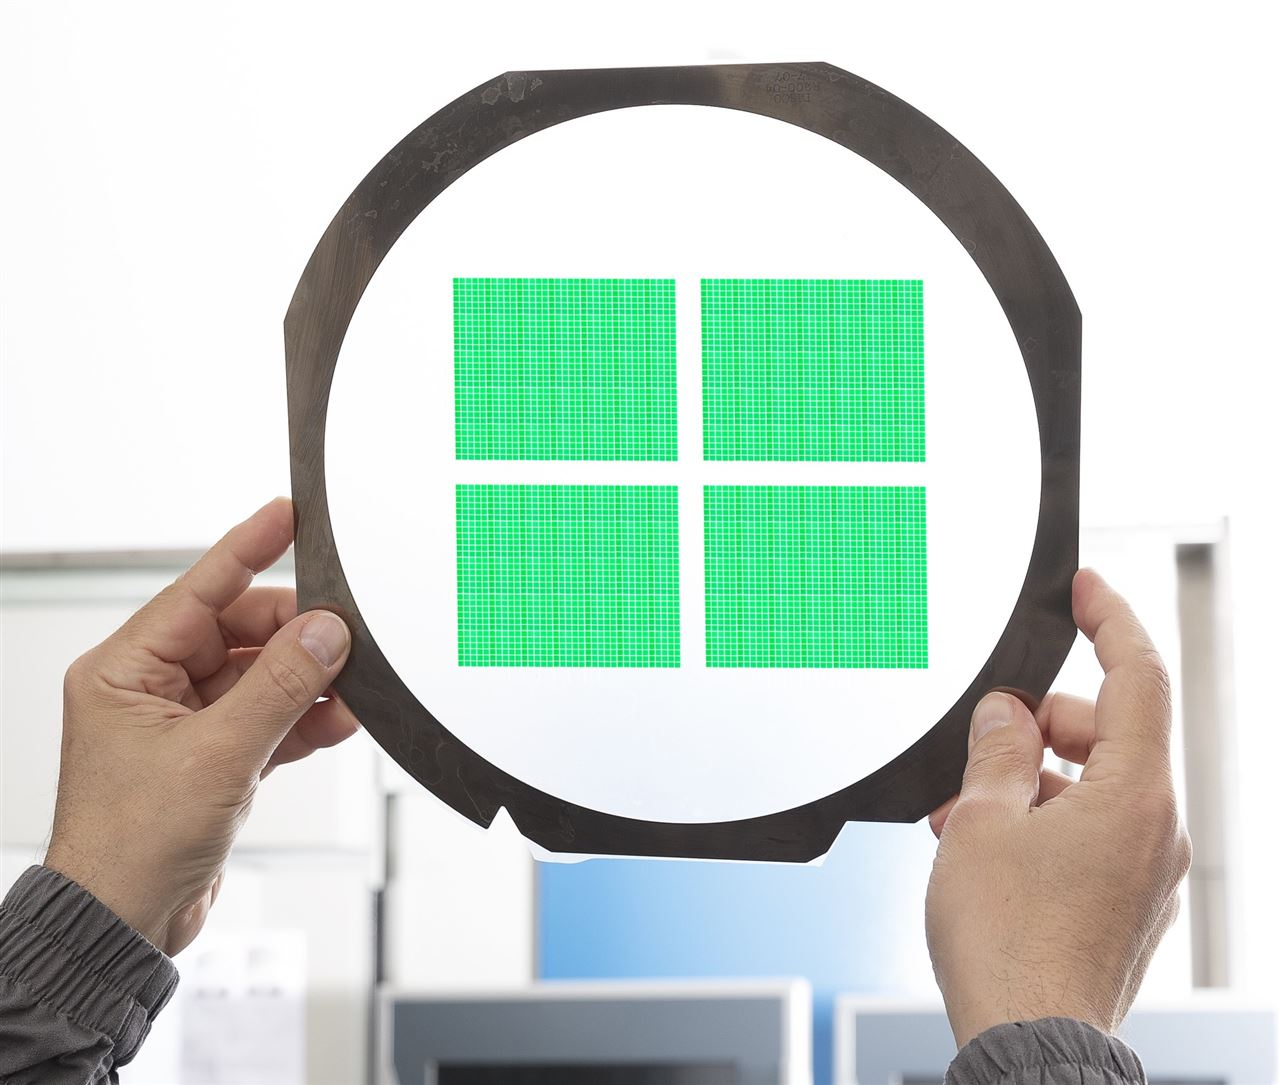 Small optical filters without compromising spectral quality